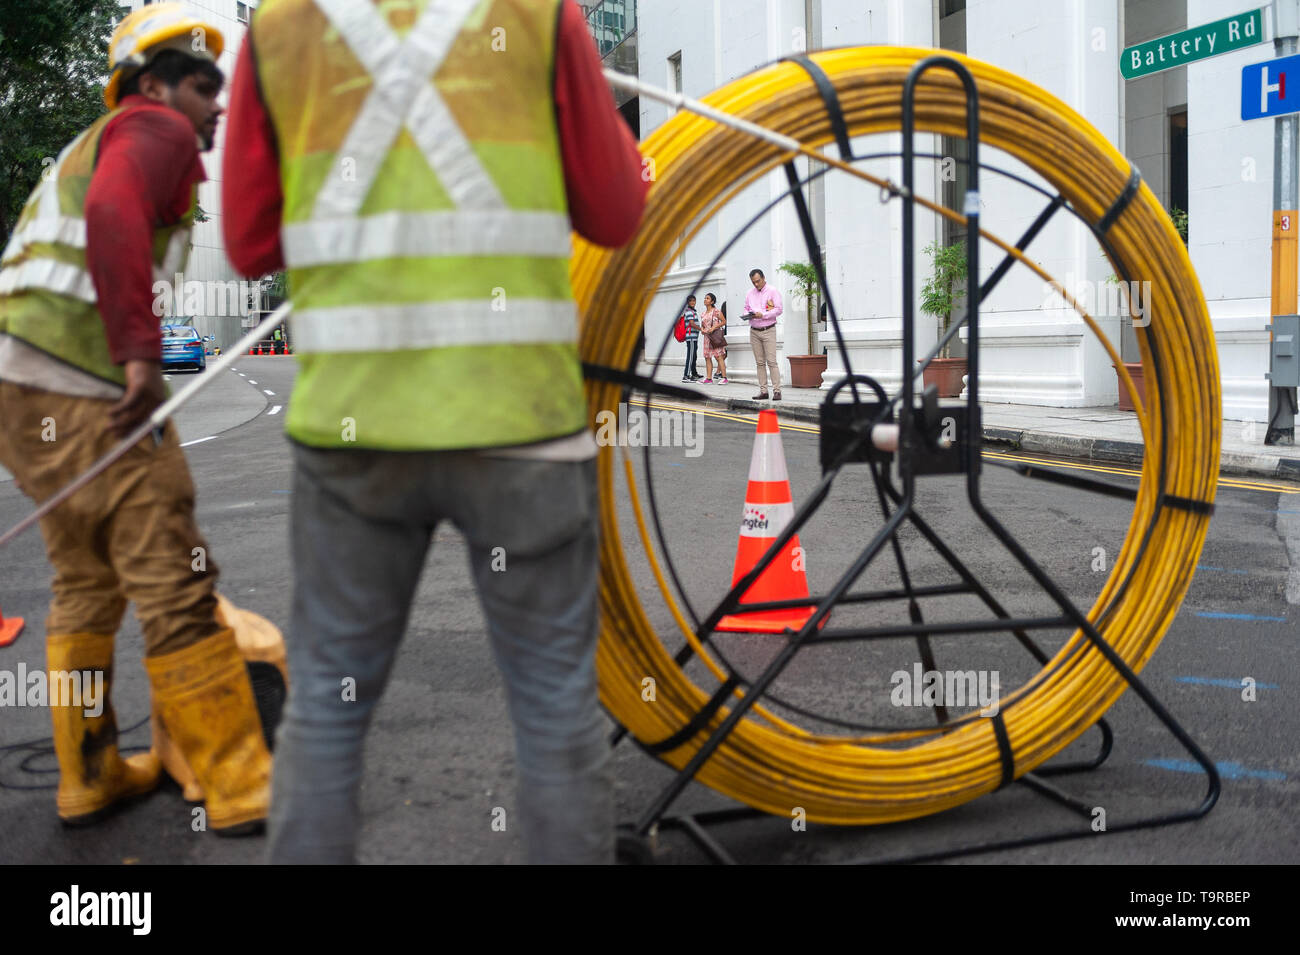 15.04.2018, Singapore, Republic of Singapore, Asia - Two workers are laying cables on a road in the central business district. - Stock Image